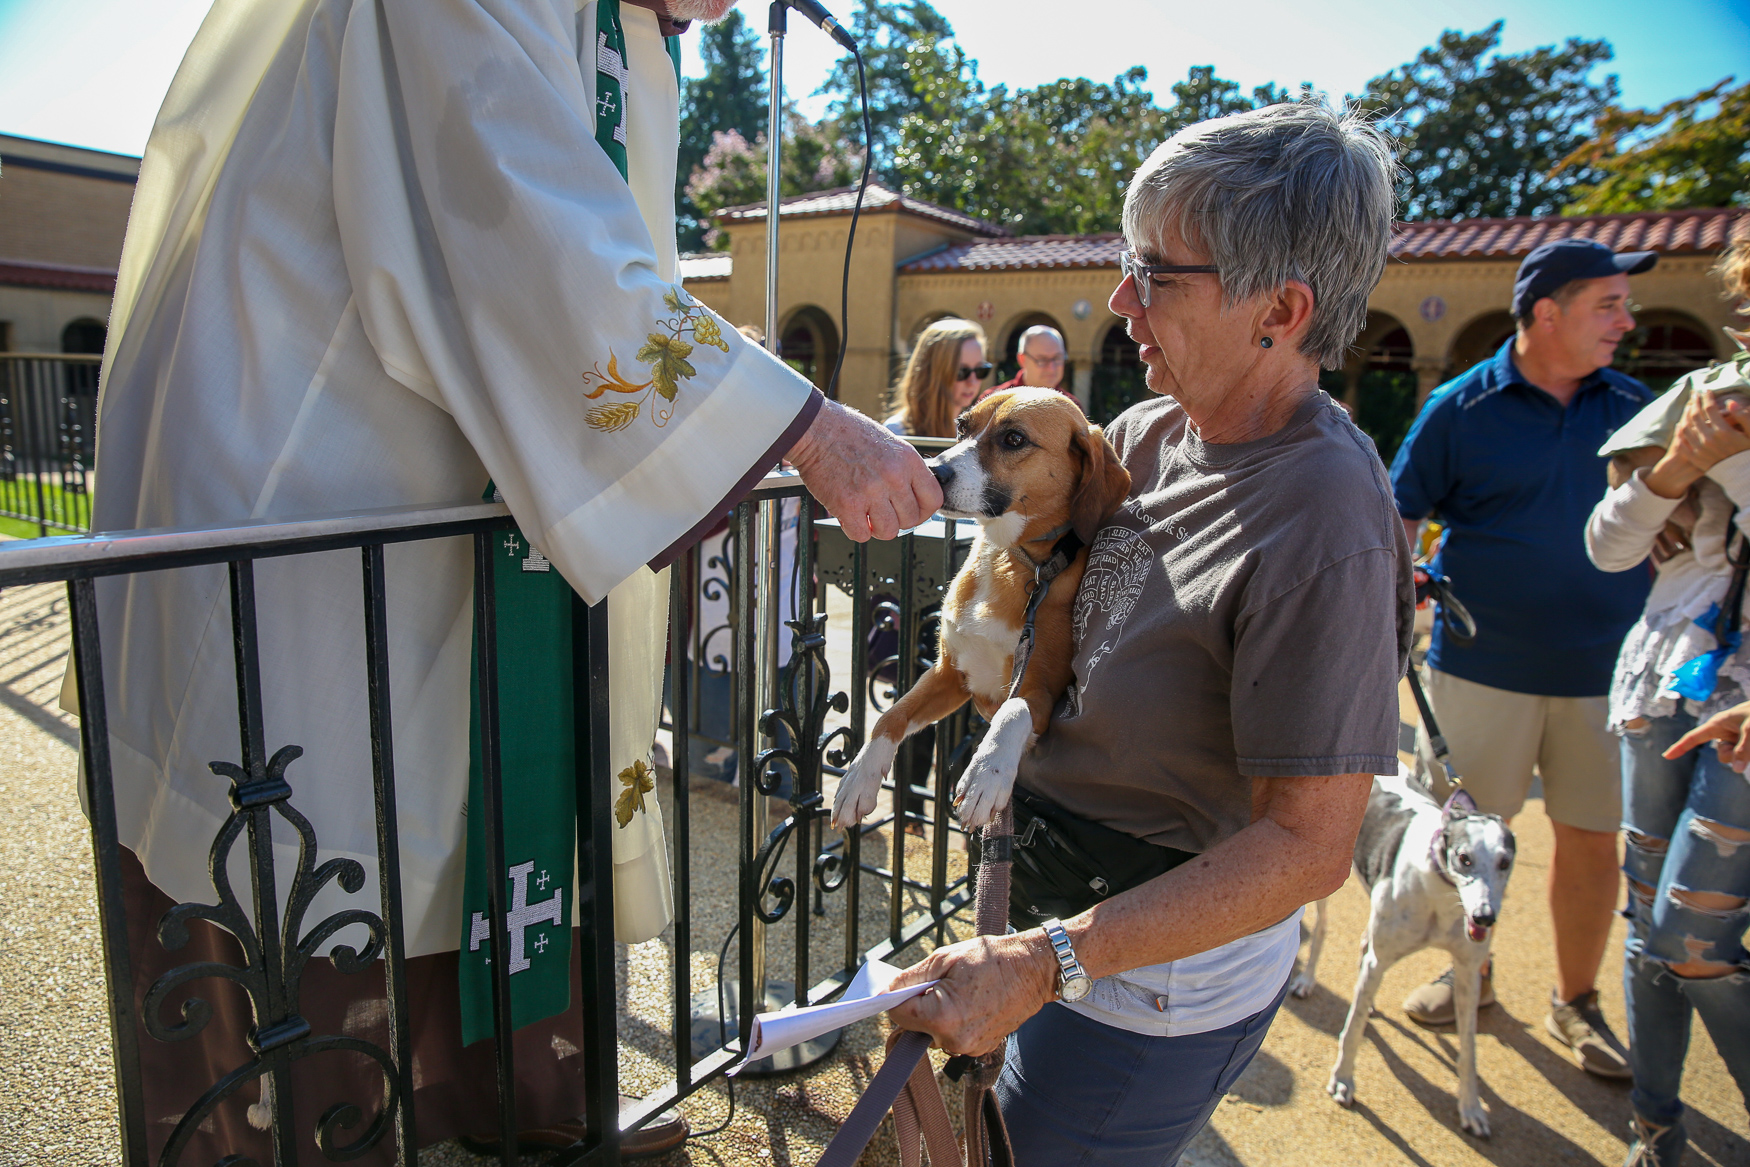 On the morning of Saturday, September 29, the parking lot of the{ }Franciscan Monastery of the Holy Land in America in Brookland was filled with animals of all shapes and sizes. Dozens of dogs and cats, plus a hamster, a bunny and a betta fish, received a blessing from Father Jim Gardiner, SA. The service is conducted annually as a way to celebrate the life of Saint Francis of Assisi, who is best known for his love of animals. The animals' owners sang hymns and prayed before the crowd was showered with holy water. Each animal was then brought forward to receive{ }a special Catholic medal. (Amanda Andrade-Rhoades/DC Refined)